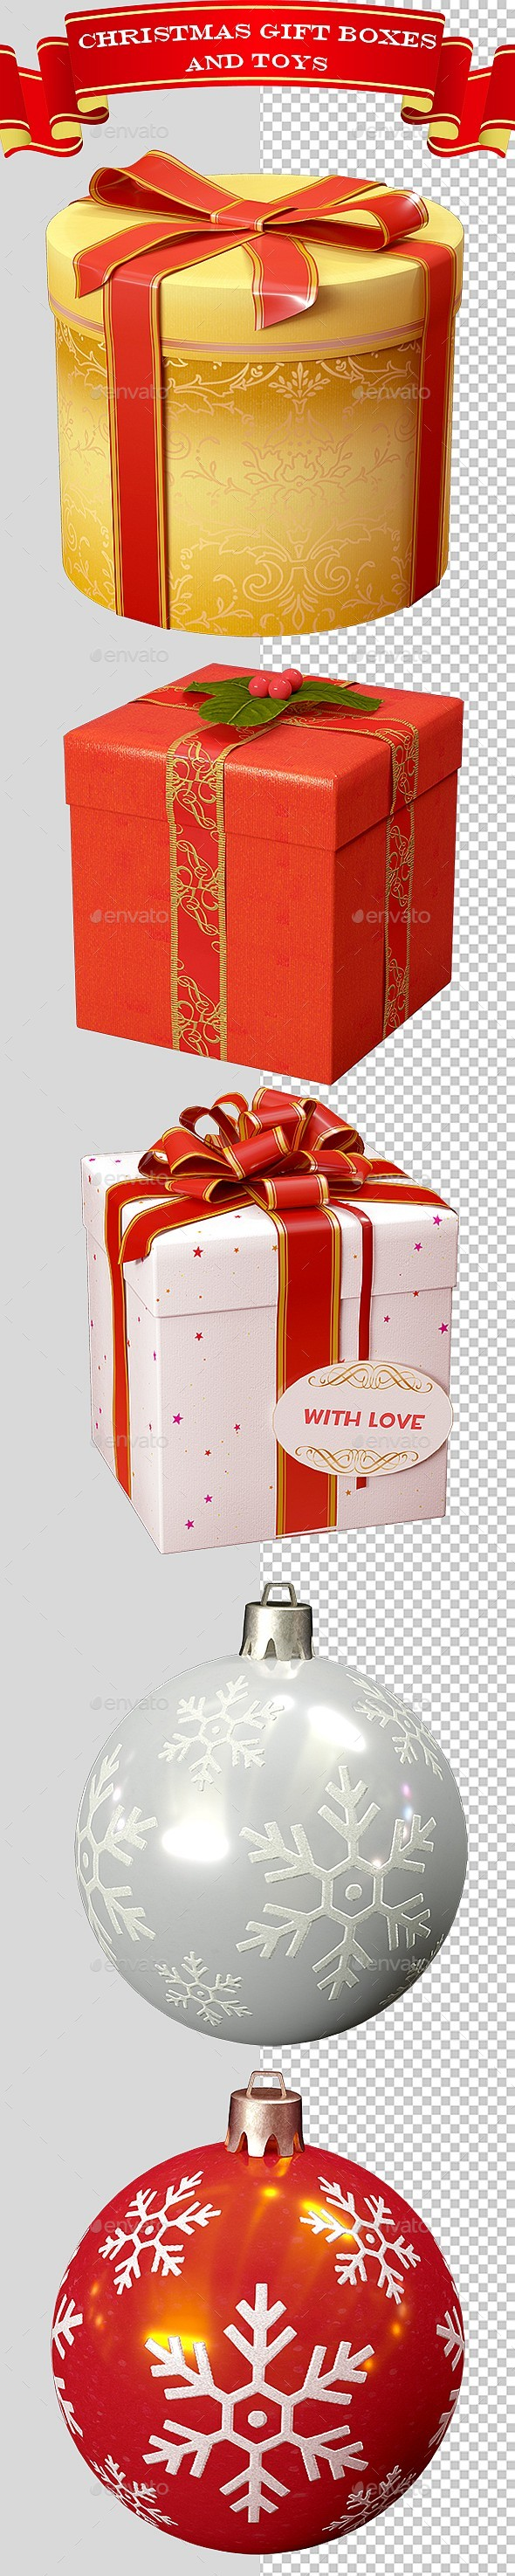 GraphicRiver 3D Christmas Gift Boxes and Toys Ver.1 21043393